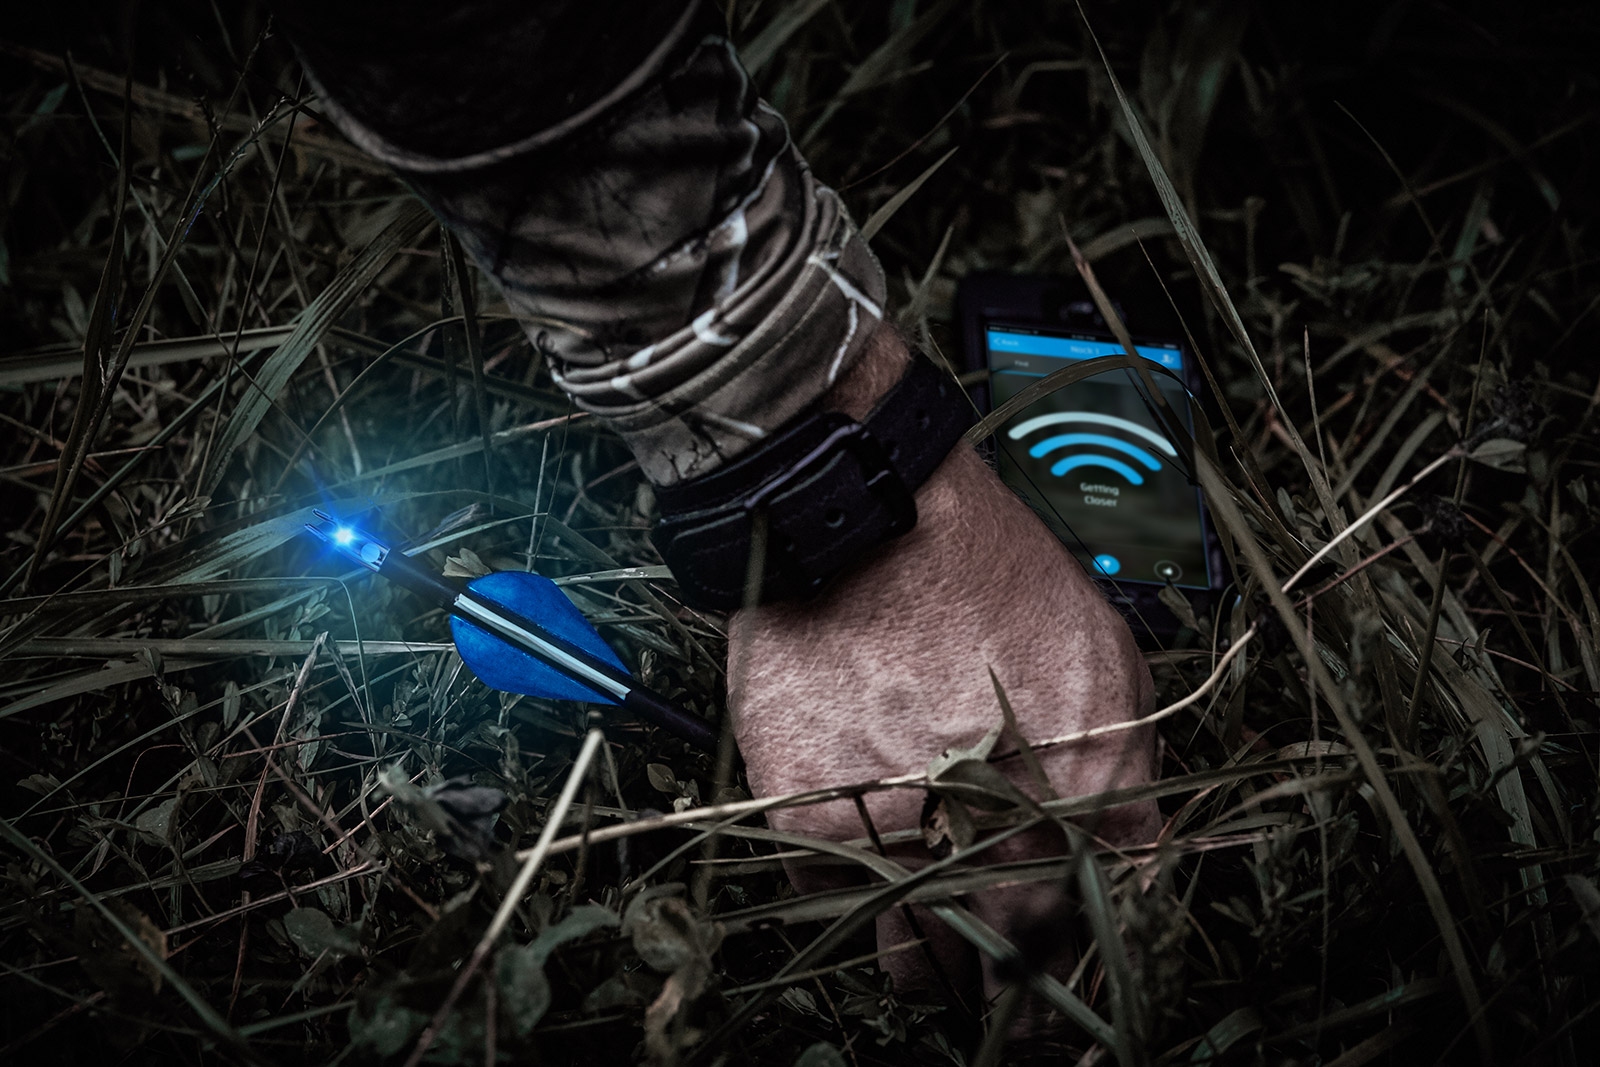 Breadcrumb Bluetooth Lighted Nock - Track your hunting arrow